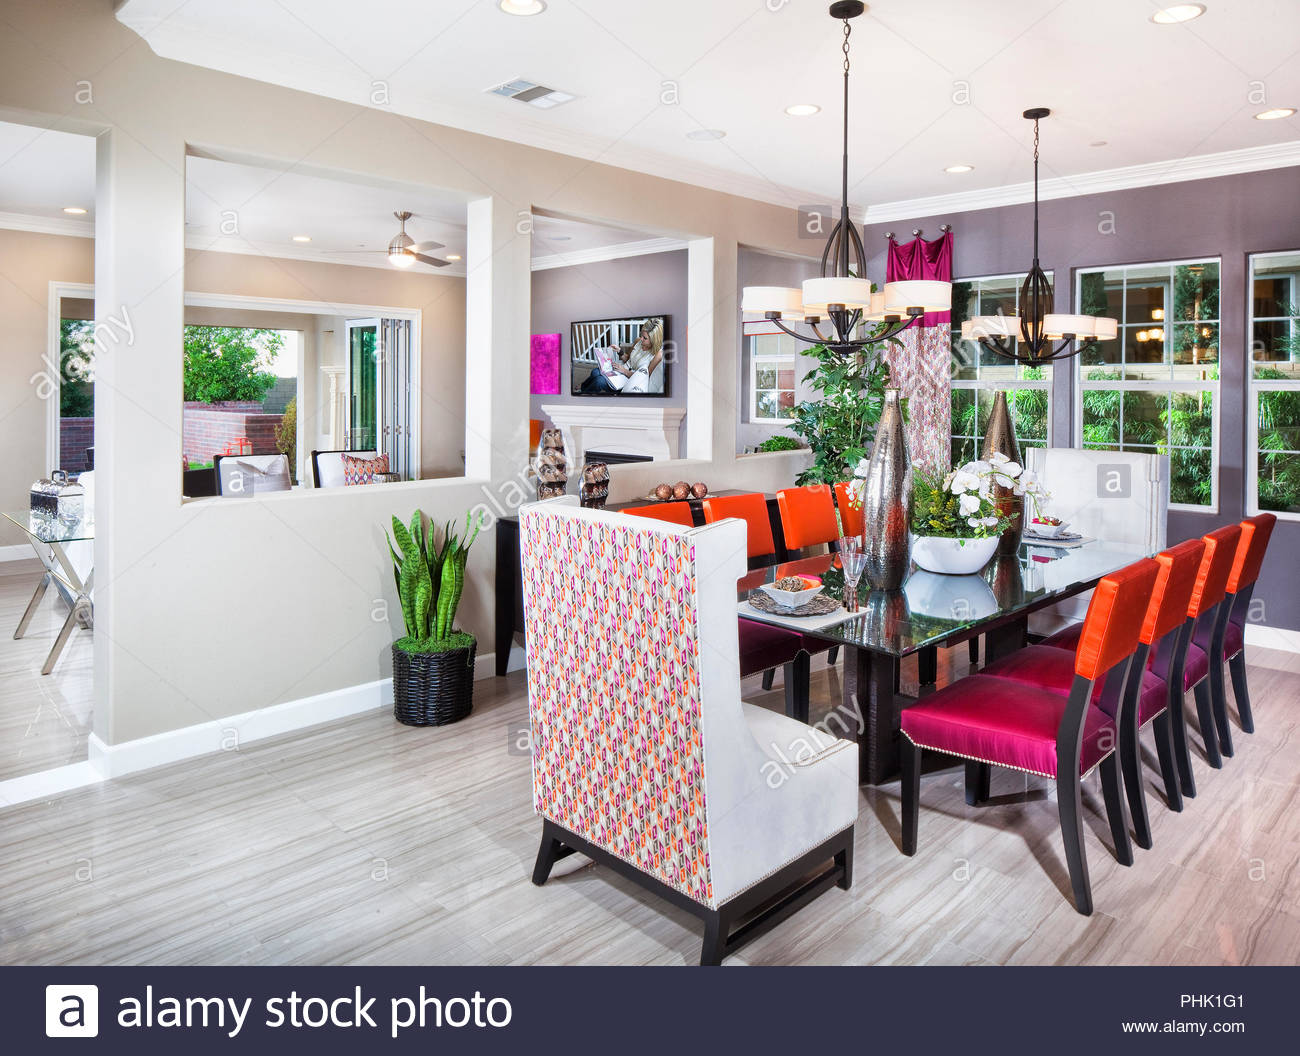 Bright dining room - Stock Image